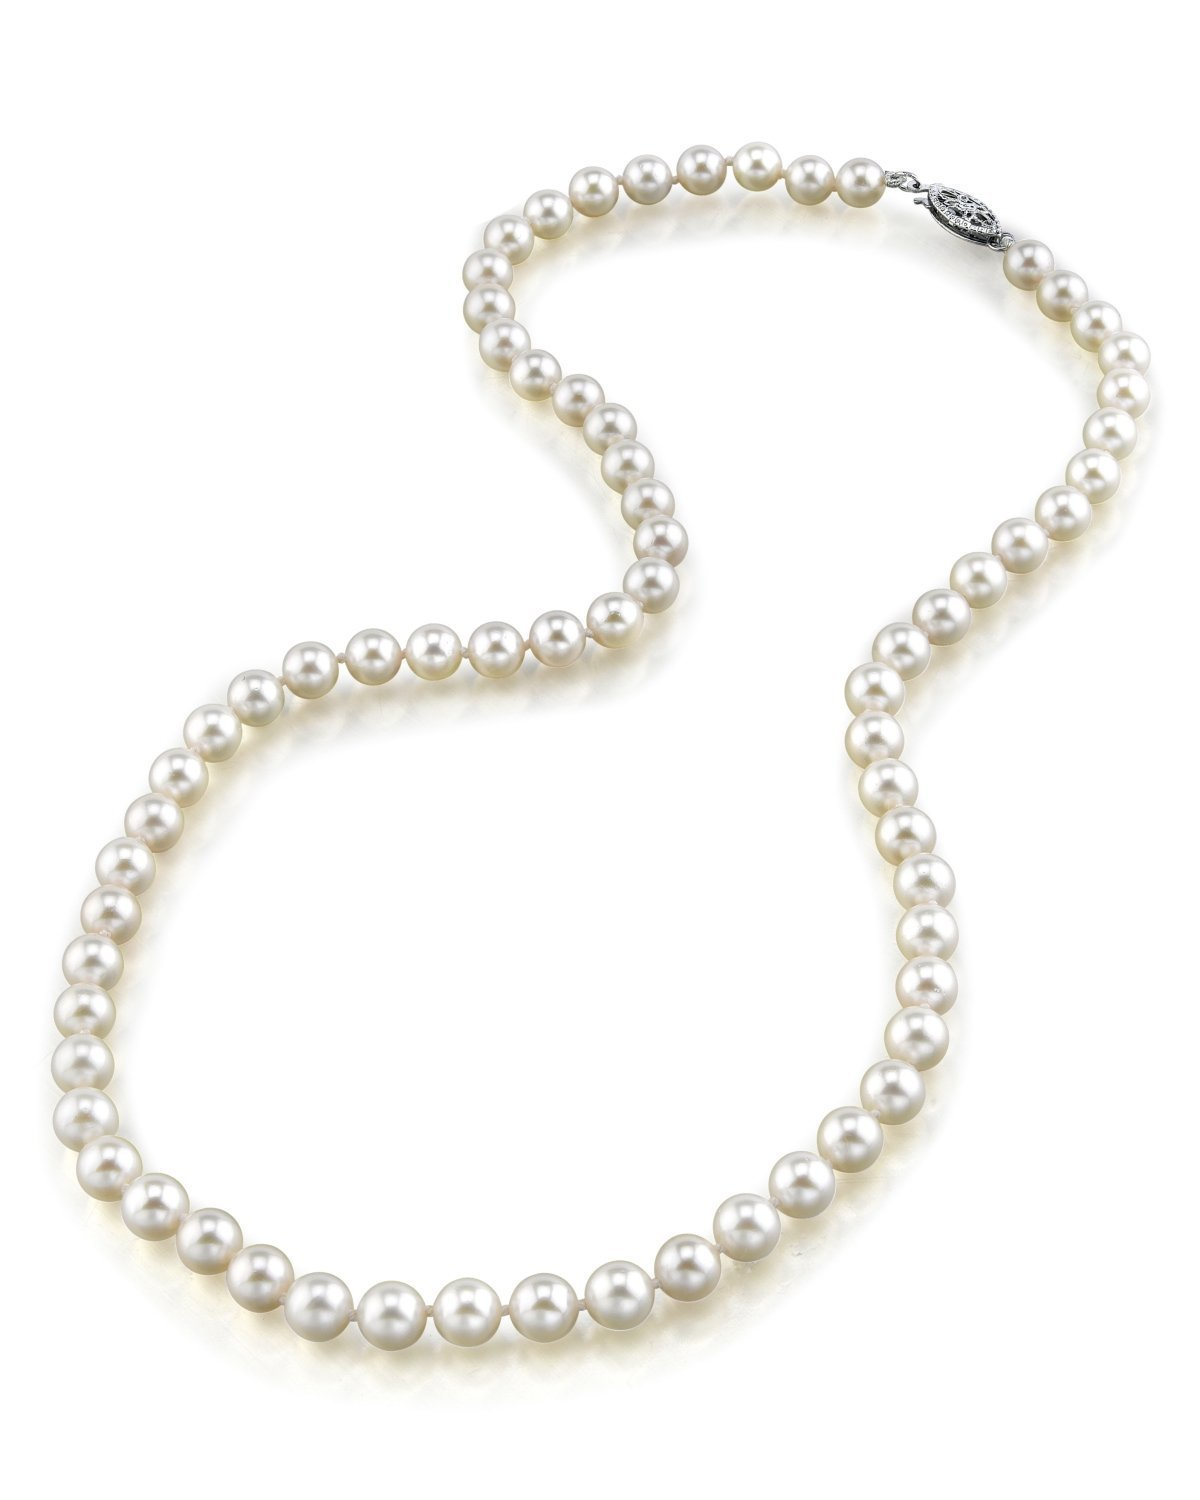 THE PEARL SOURCE 14K Gold 4.0-4.5mm AAA Quality Round Genuine White Japanese Akoya Saltwater Cultured Pearl Necklace in 18'' Princess Length for Women by The Pearl Source